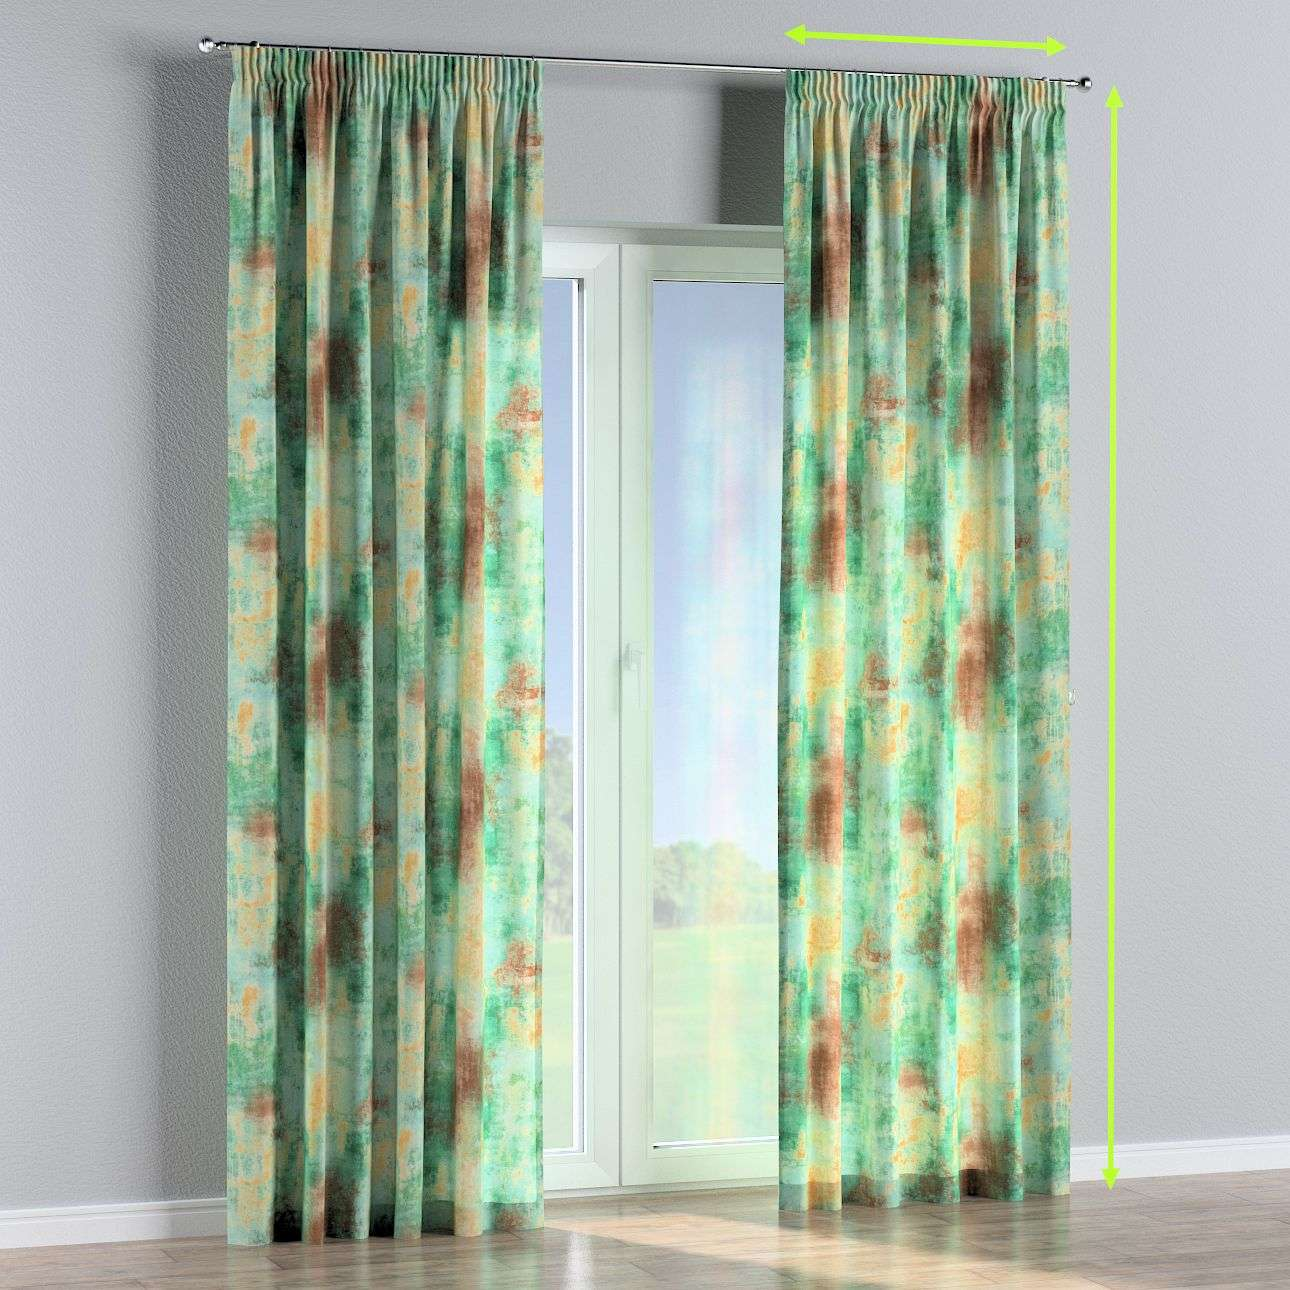 Pencil pleat curtains in collection Urban Jungle, fabric: 141-22